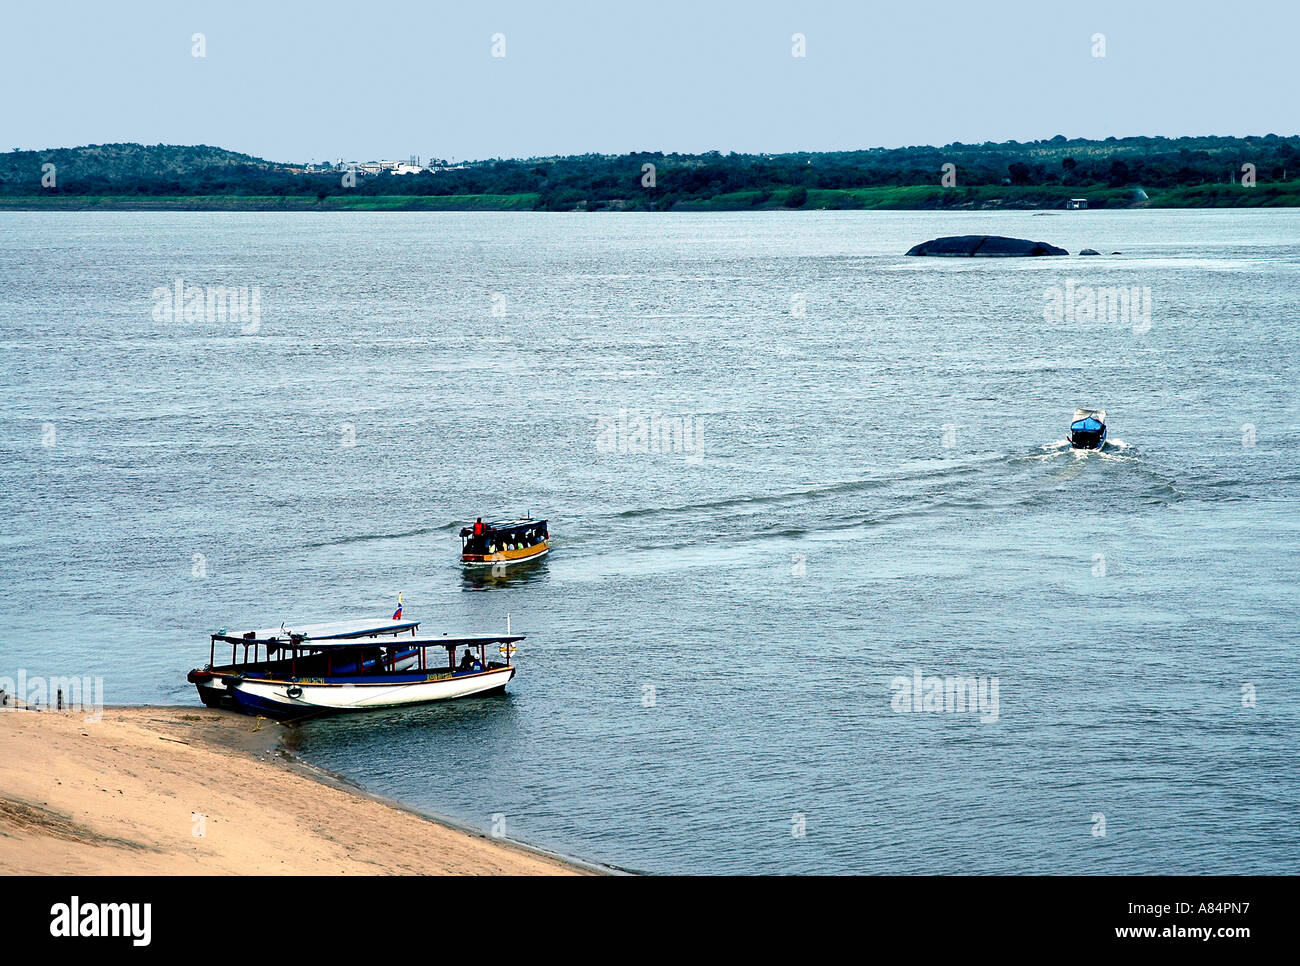 Small passenger boats ferry people across the Orinoco river at Ciudad Bolívar in Venezuela - Stock Image